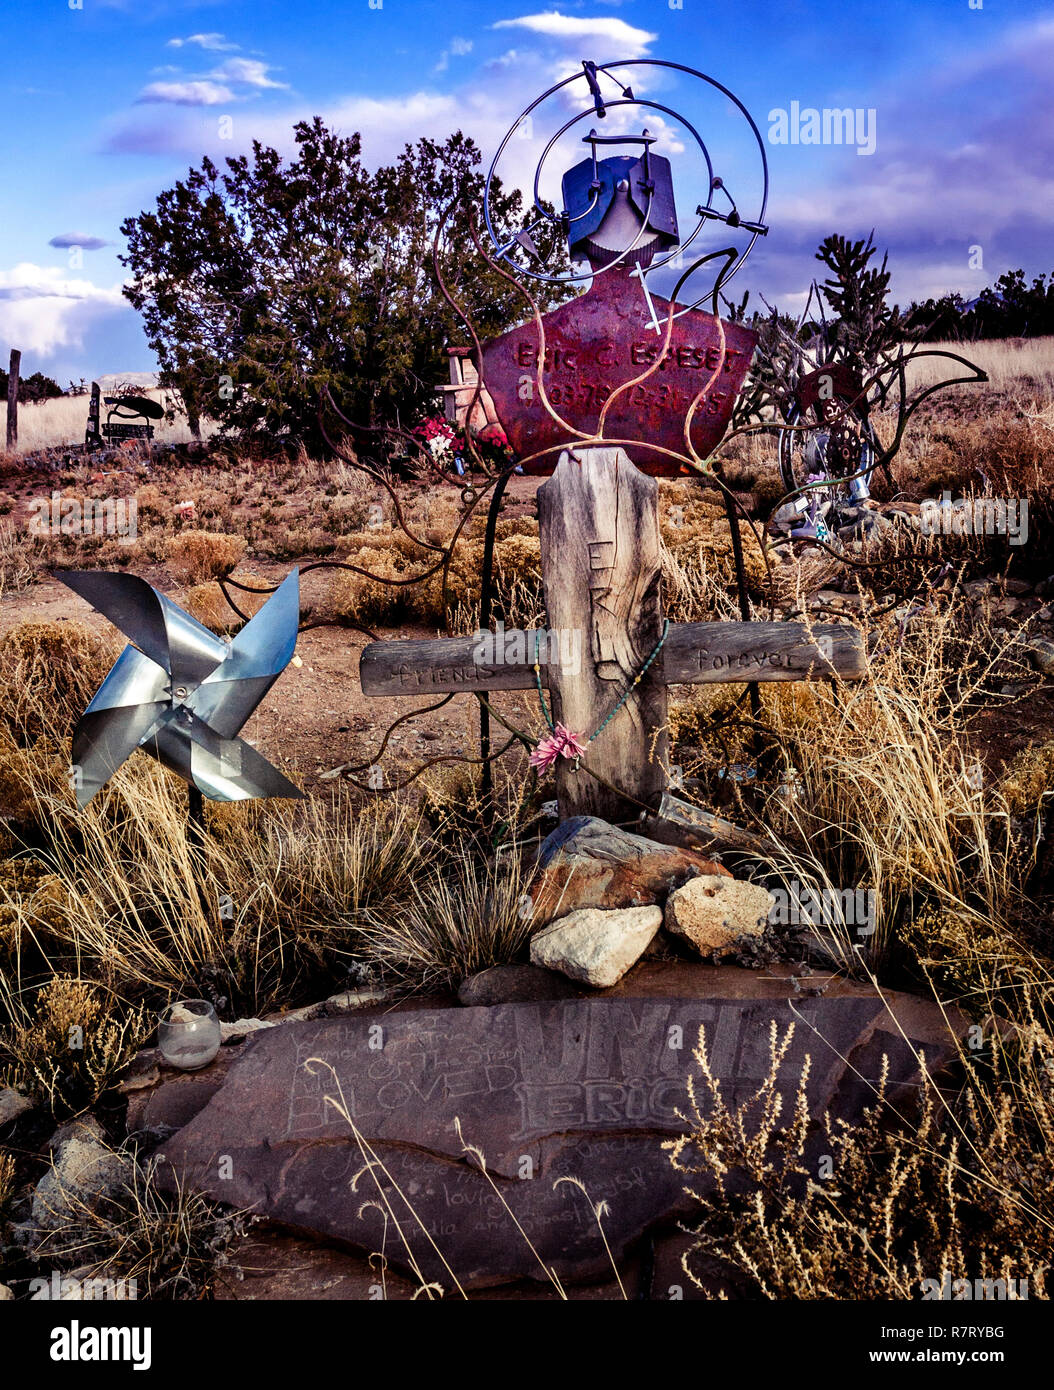 Cemetery at Madrid New Mexico where creative grave markers show the talents of the dead. - Stock Image